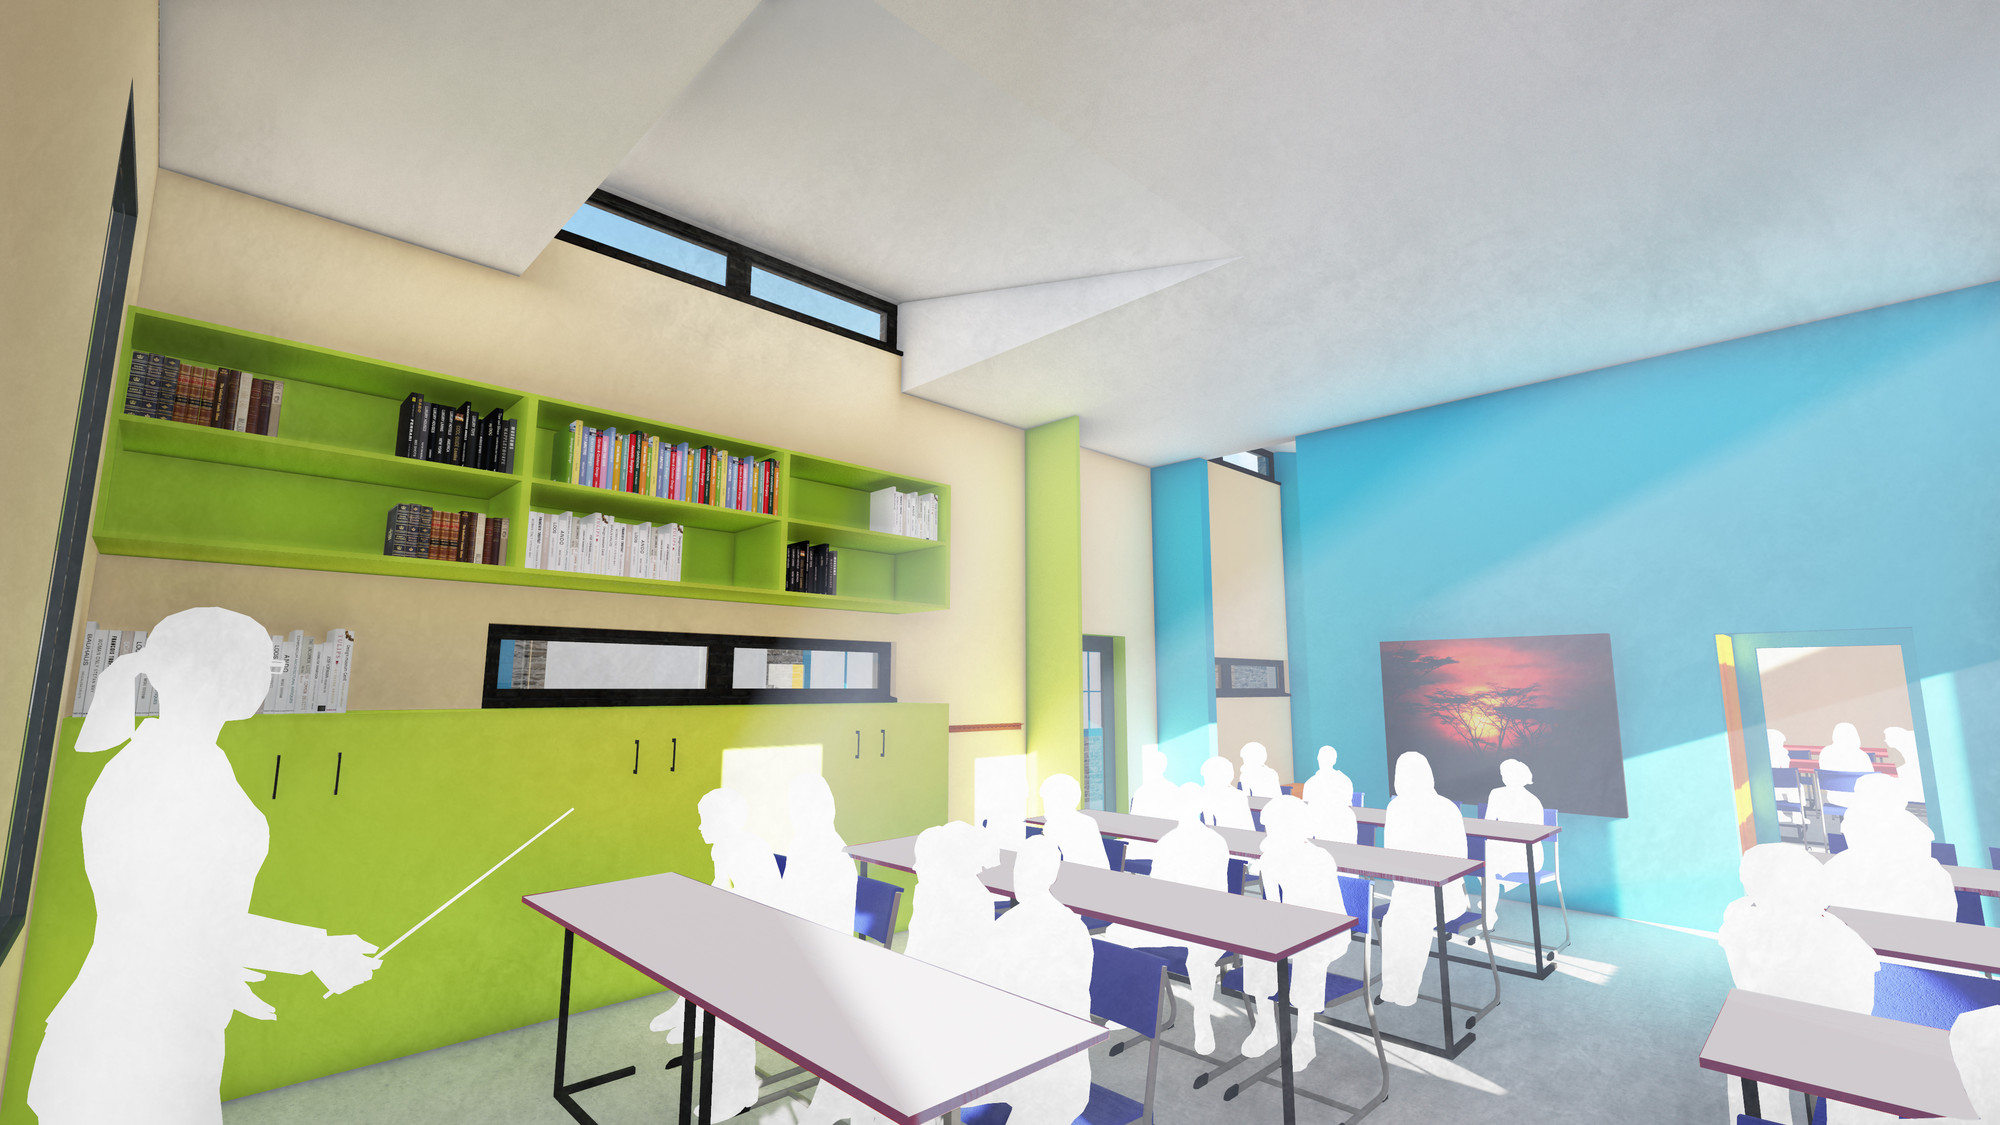 Classroom Ventilation Design ~ Place by design wins cool school competition